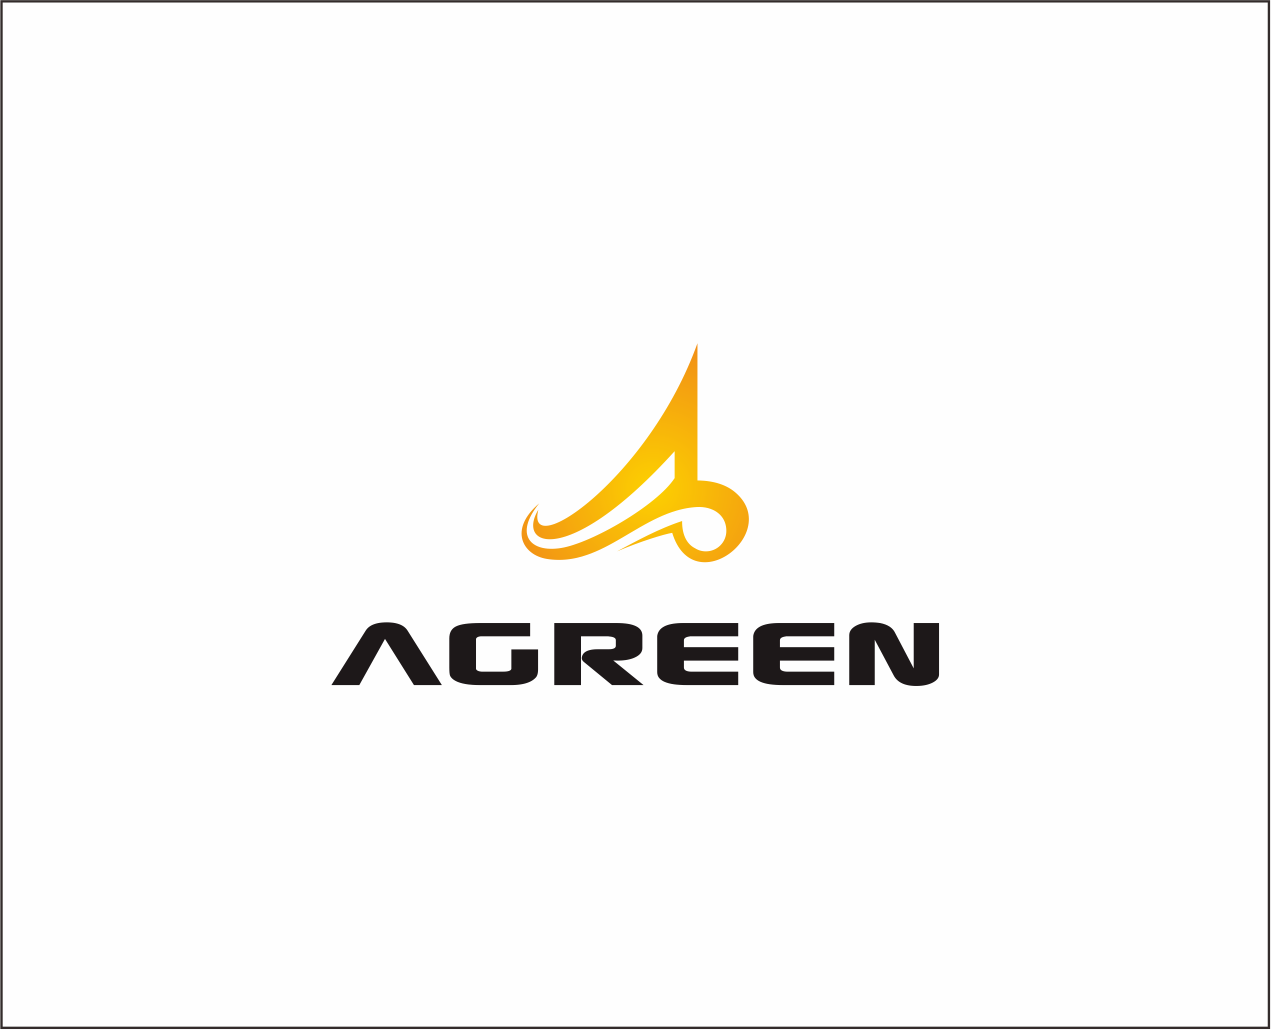 Logo Design by Armada Jamaluddin - Entry No. 6 in the Logo Design Contest Inspiring Logo Design for Agreen.